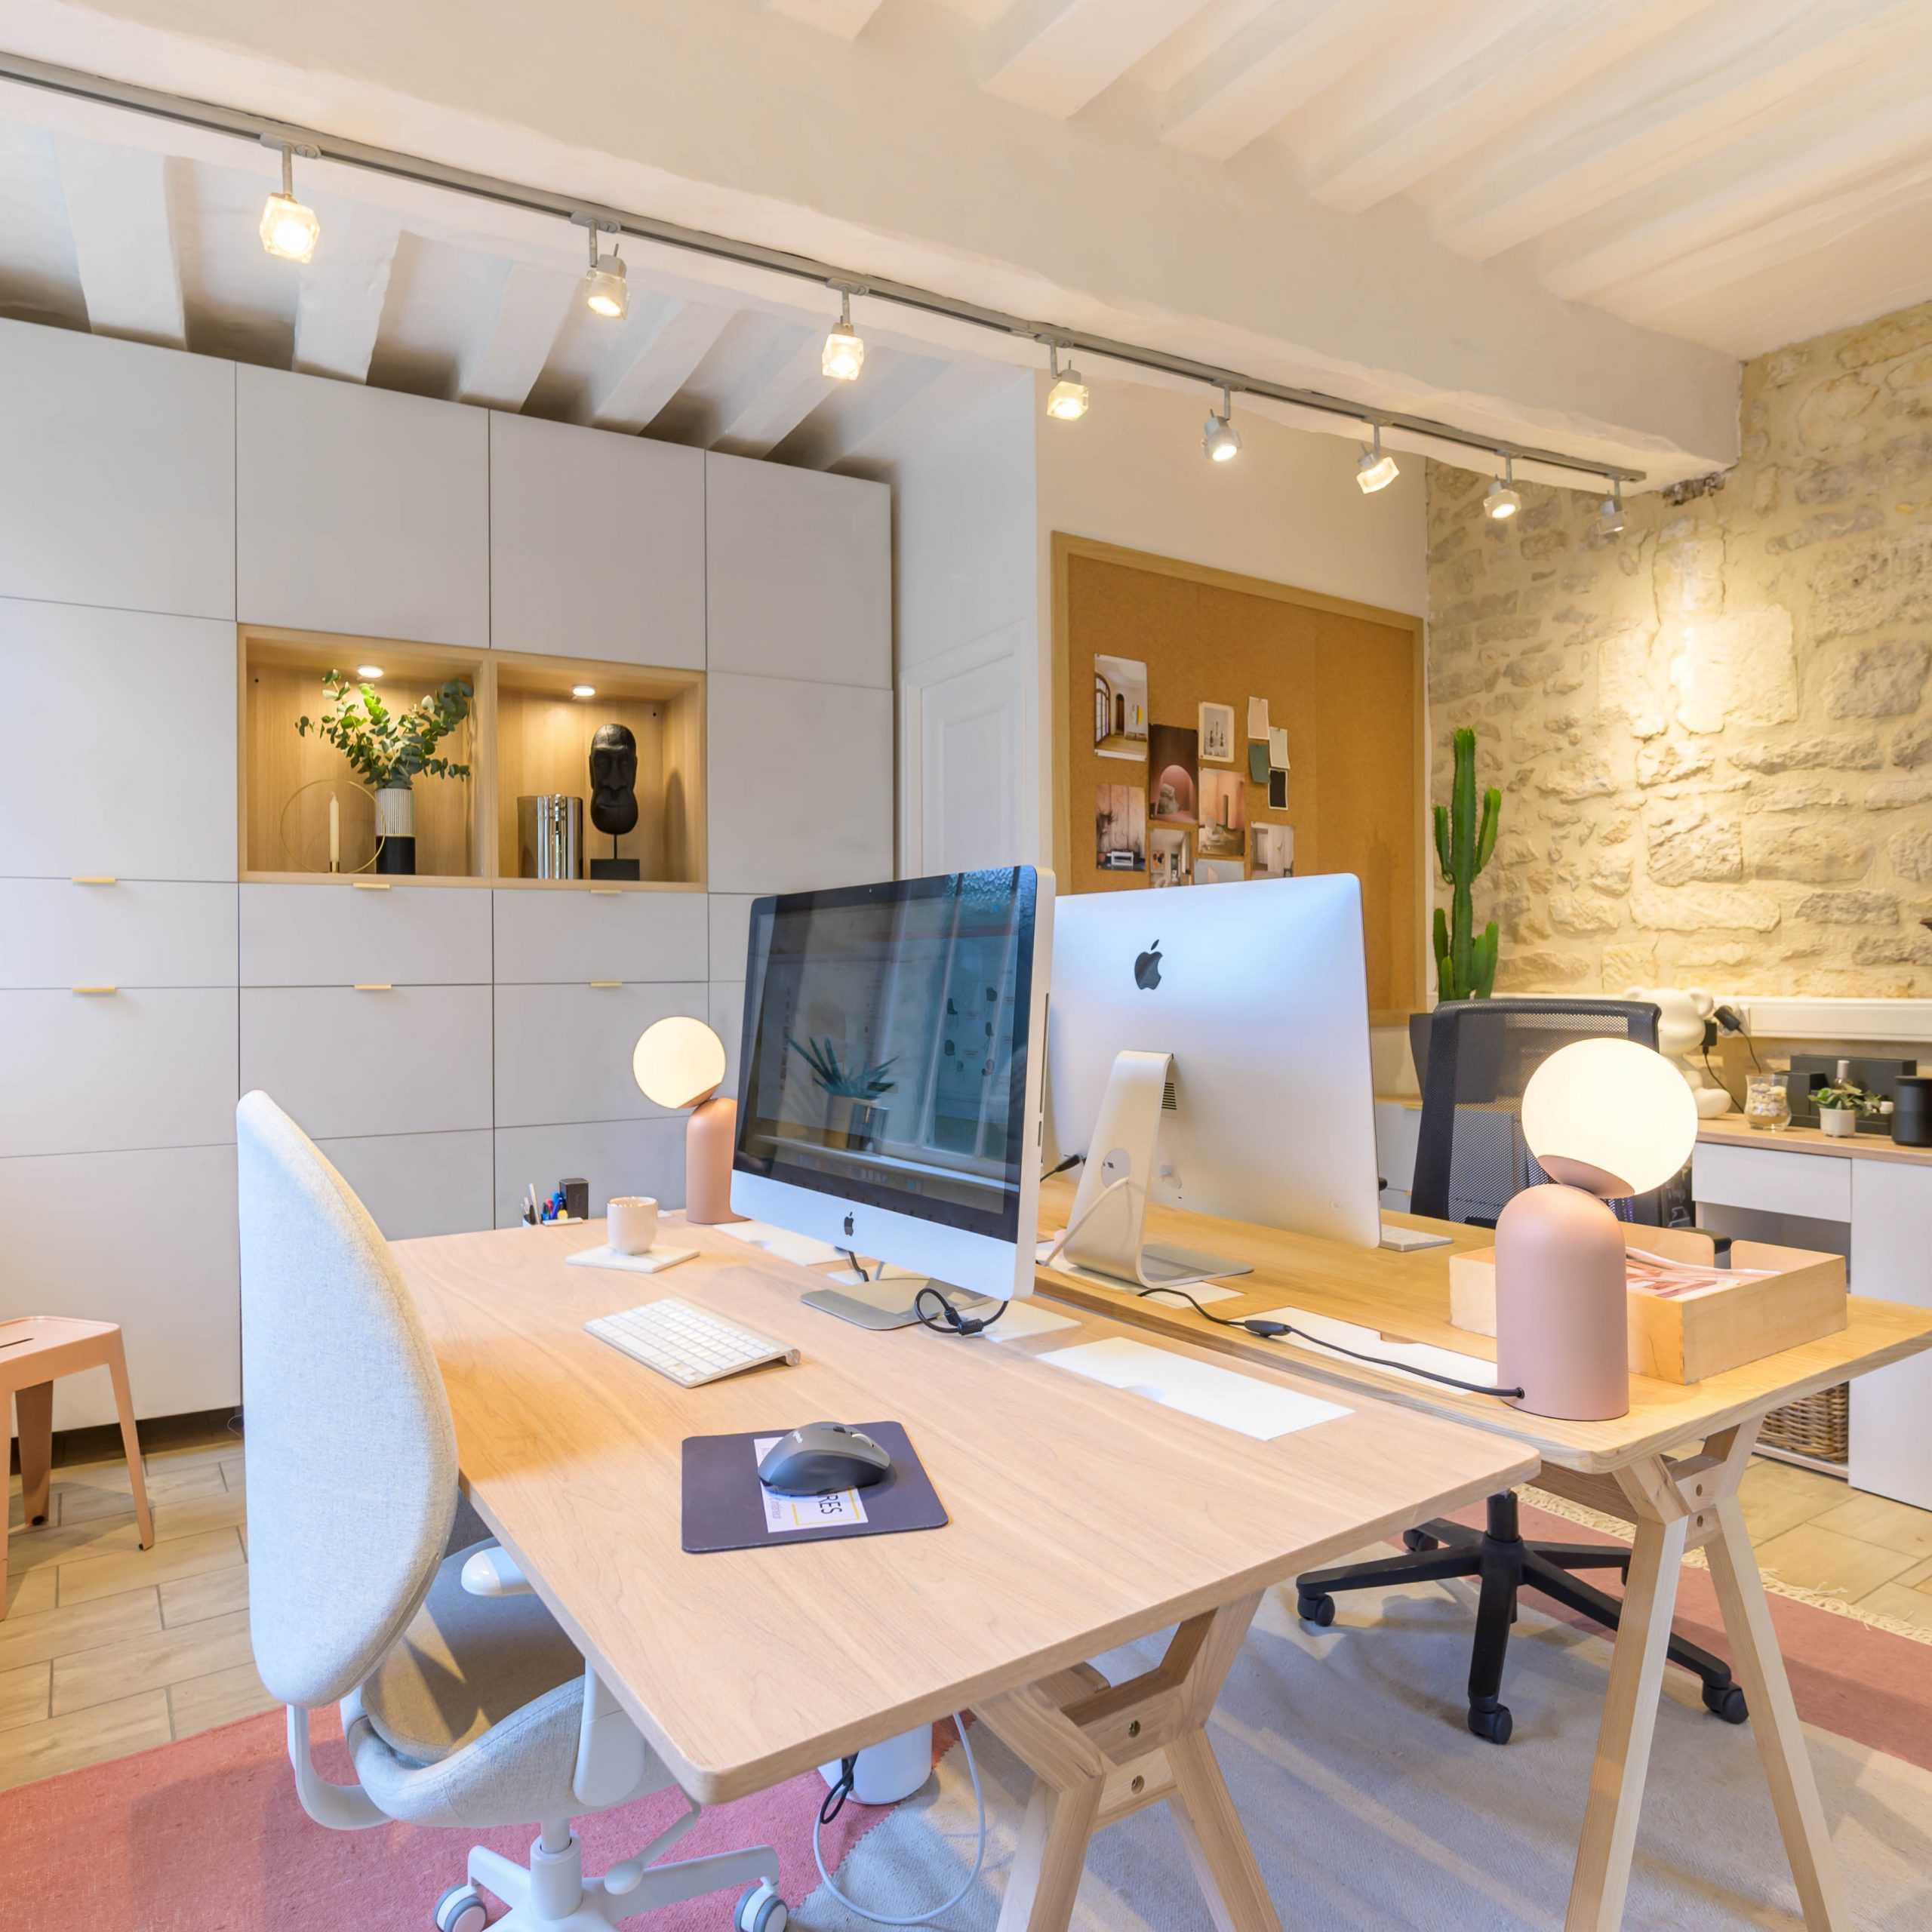 nouveau-projet-renovation-maison-garches-amenagement-transformation-architecture-dinterieur-decoration-sur-mesure-puteaux-paris-interior-design-parisian-style